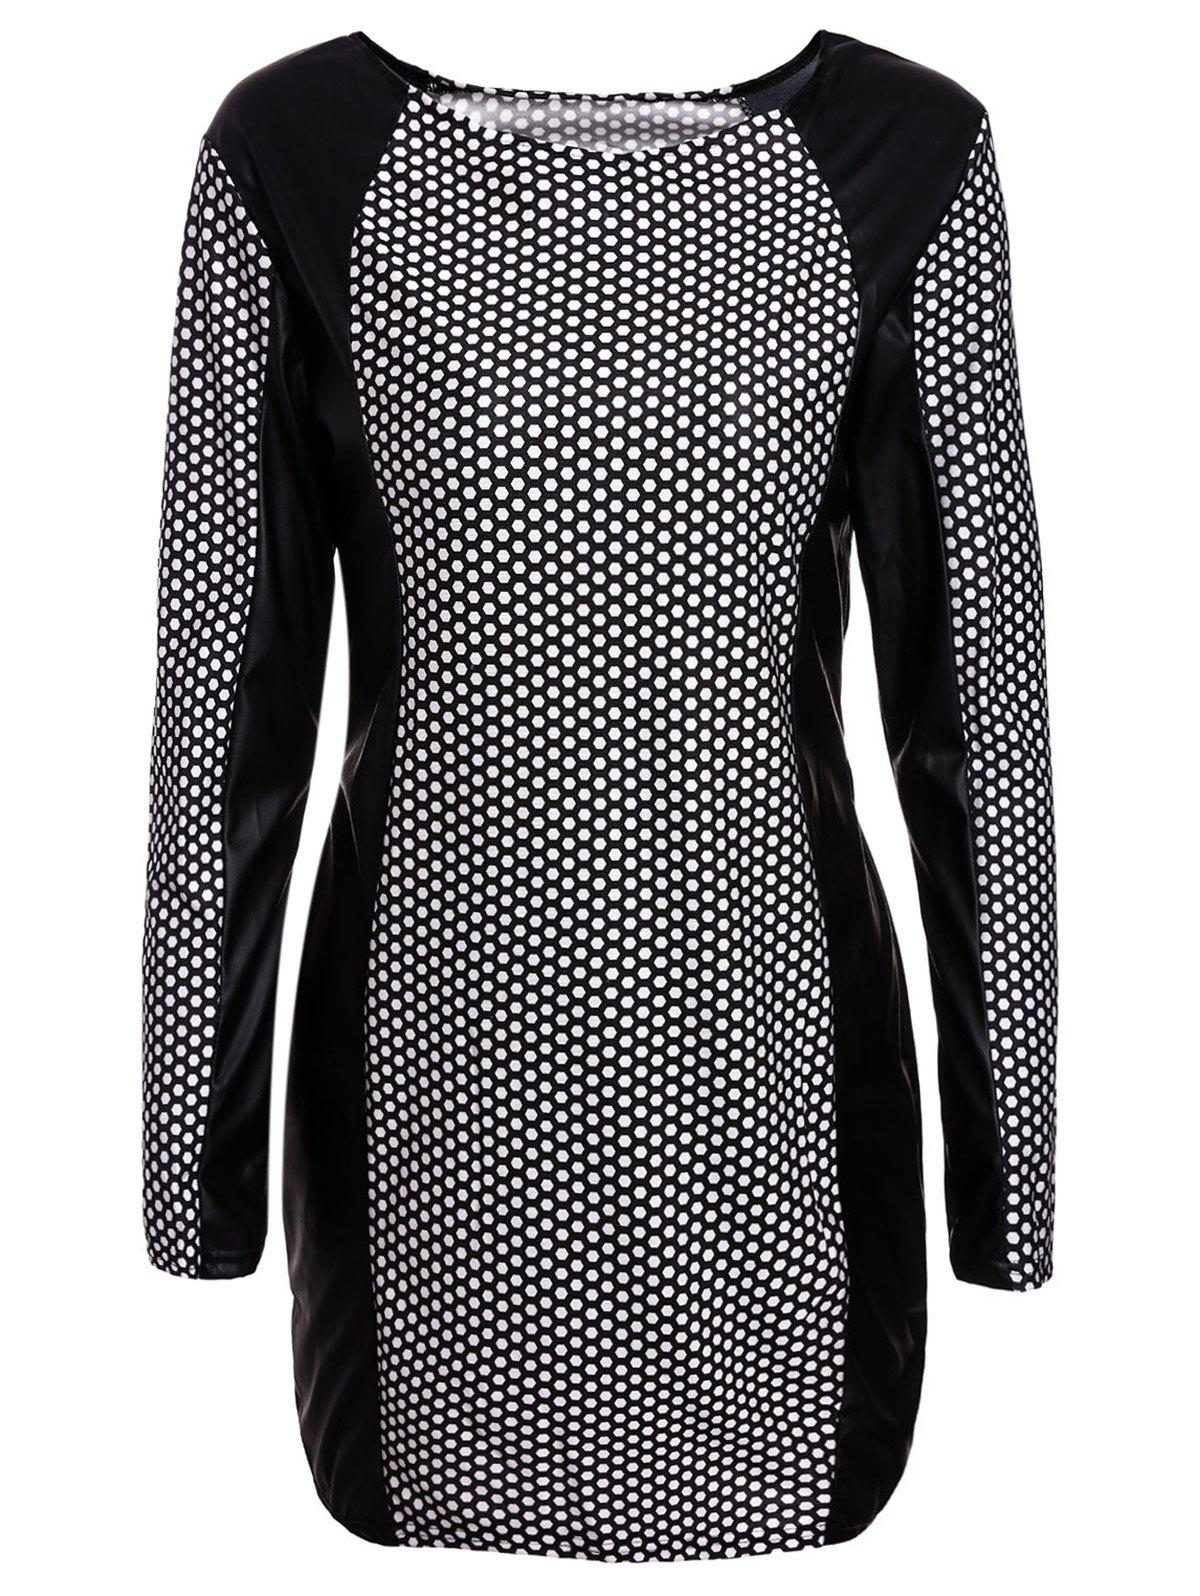 Sexy Jewel Neck PU Leather Splicing Long Sleeve Printed Dress For Women sexy halter pu leather splicing chained corset for women